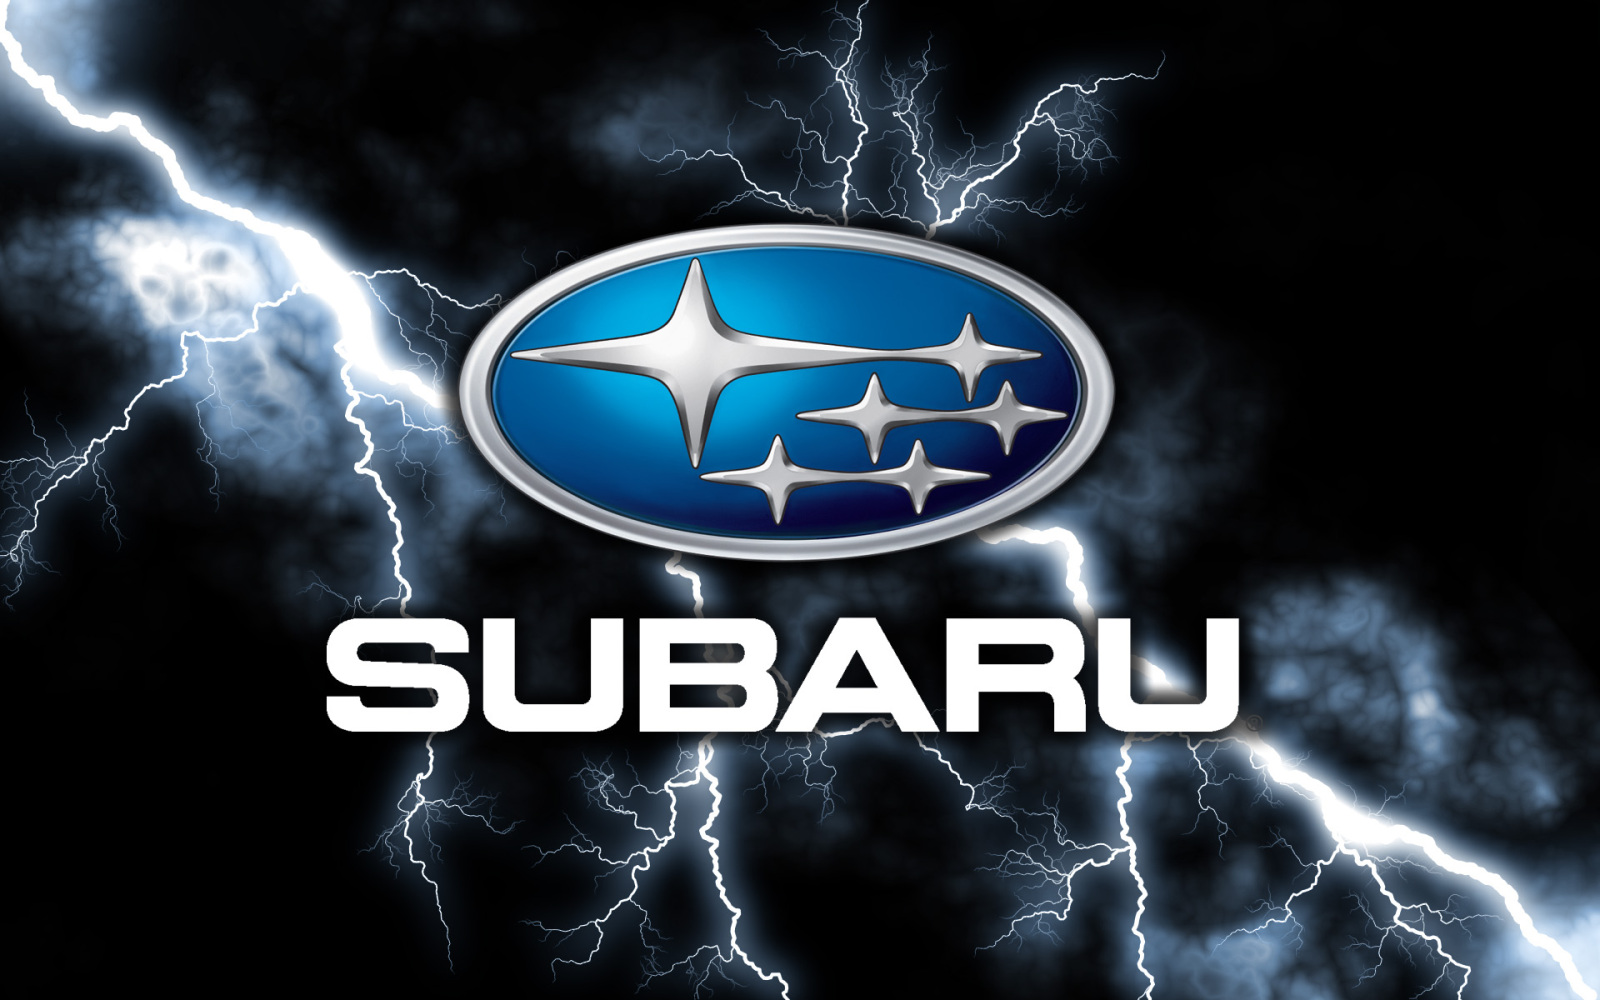 Subaru symbol Wallpaper